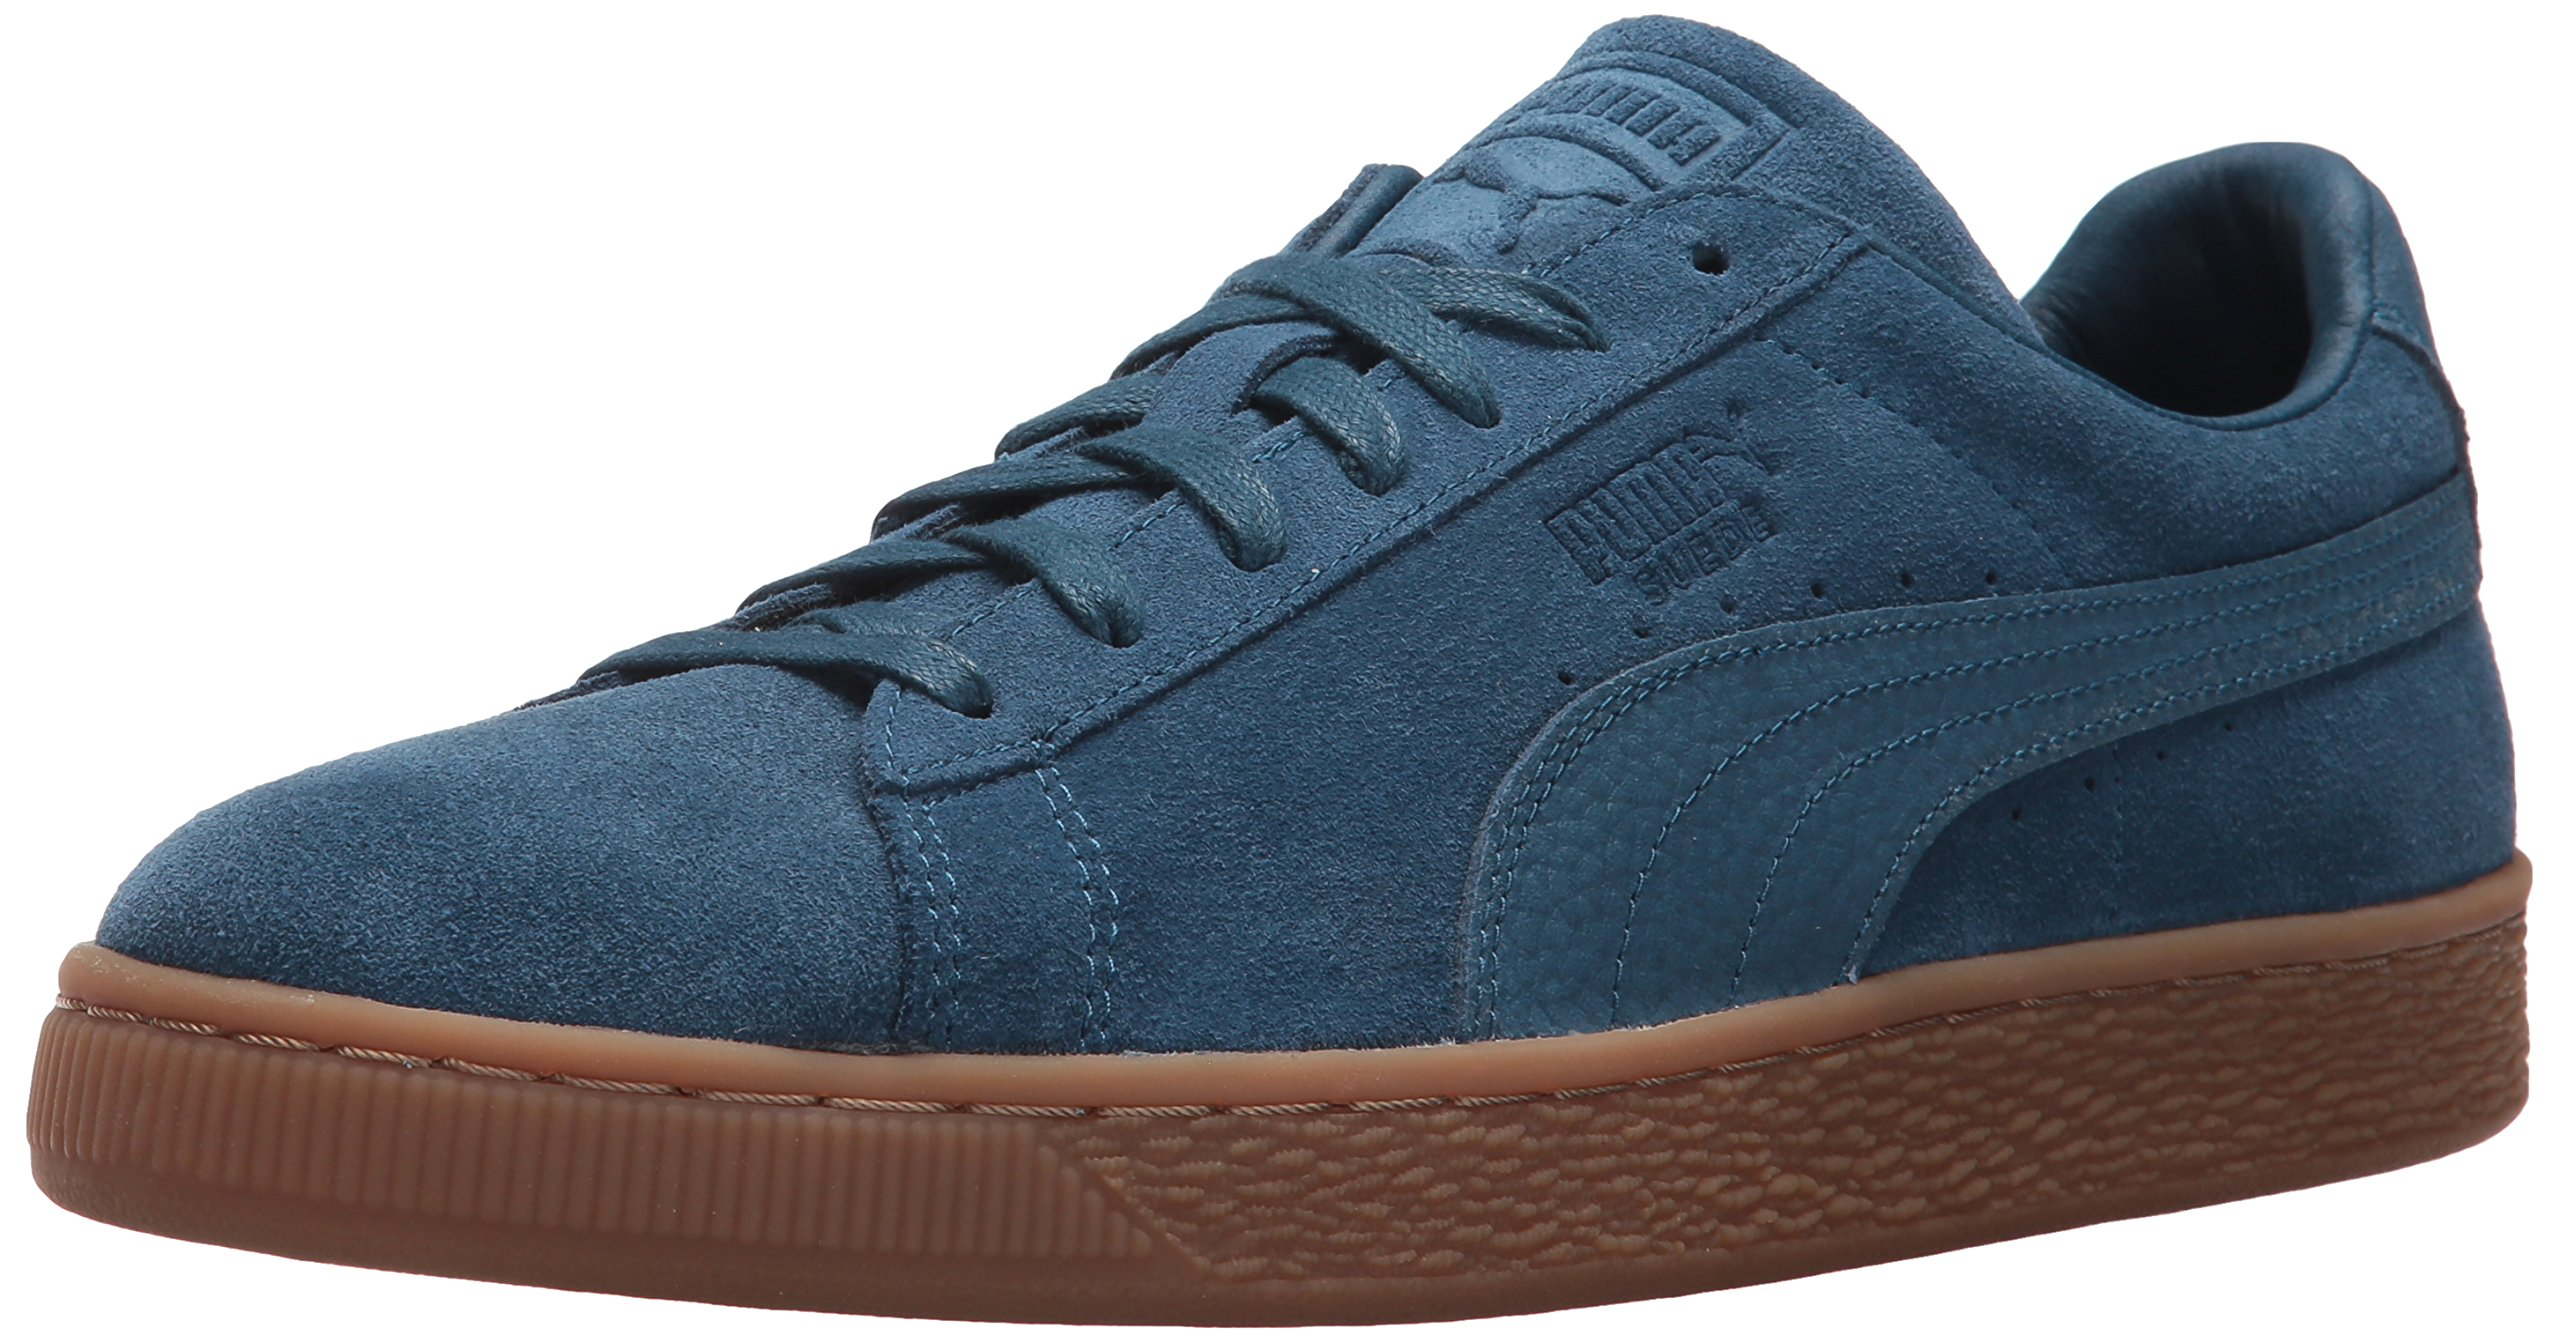 051b9290fa5 Galleon - PUMA Men s Suede Classic Natural Warmth Sneaker